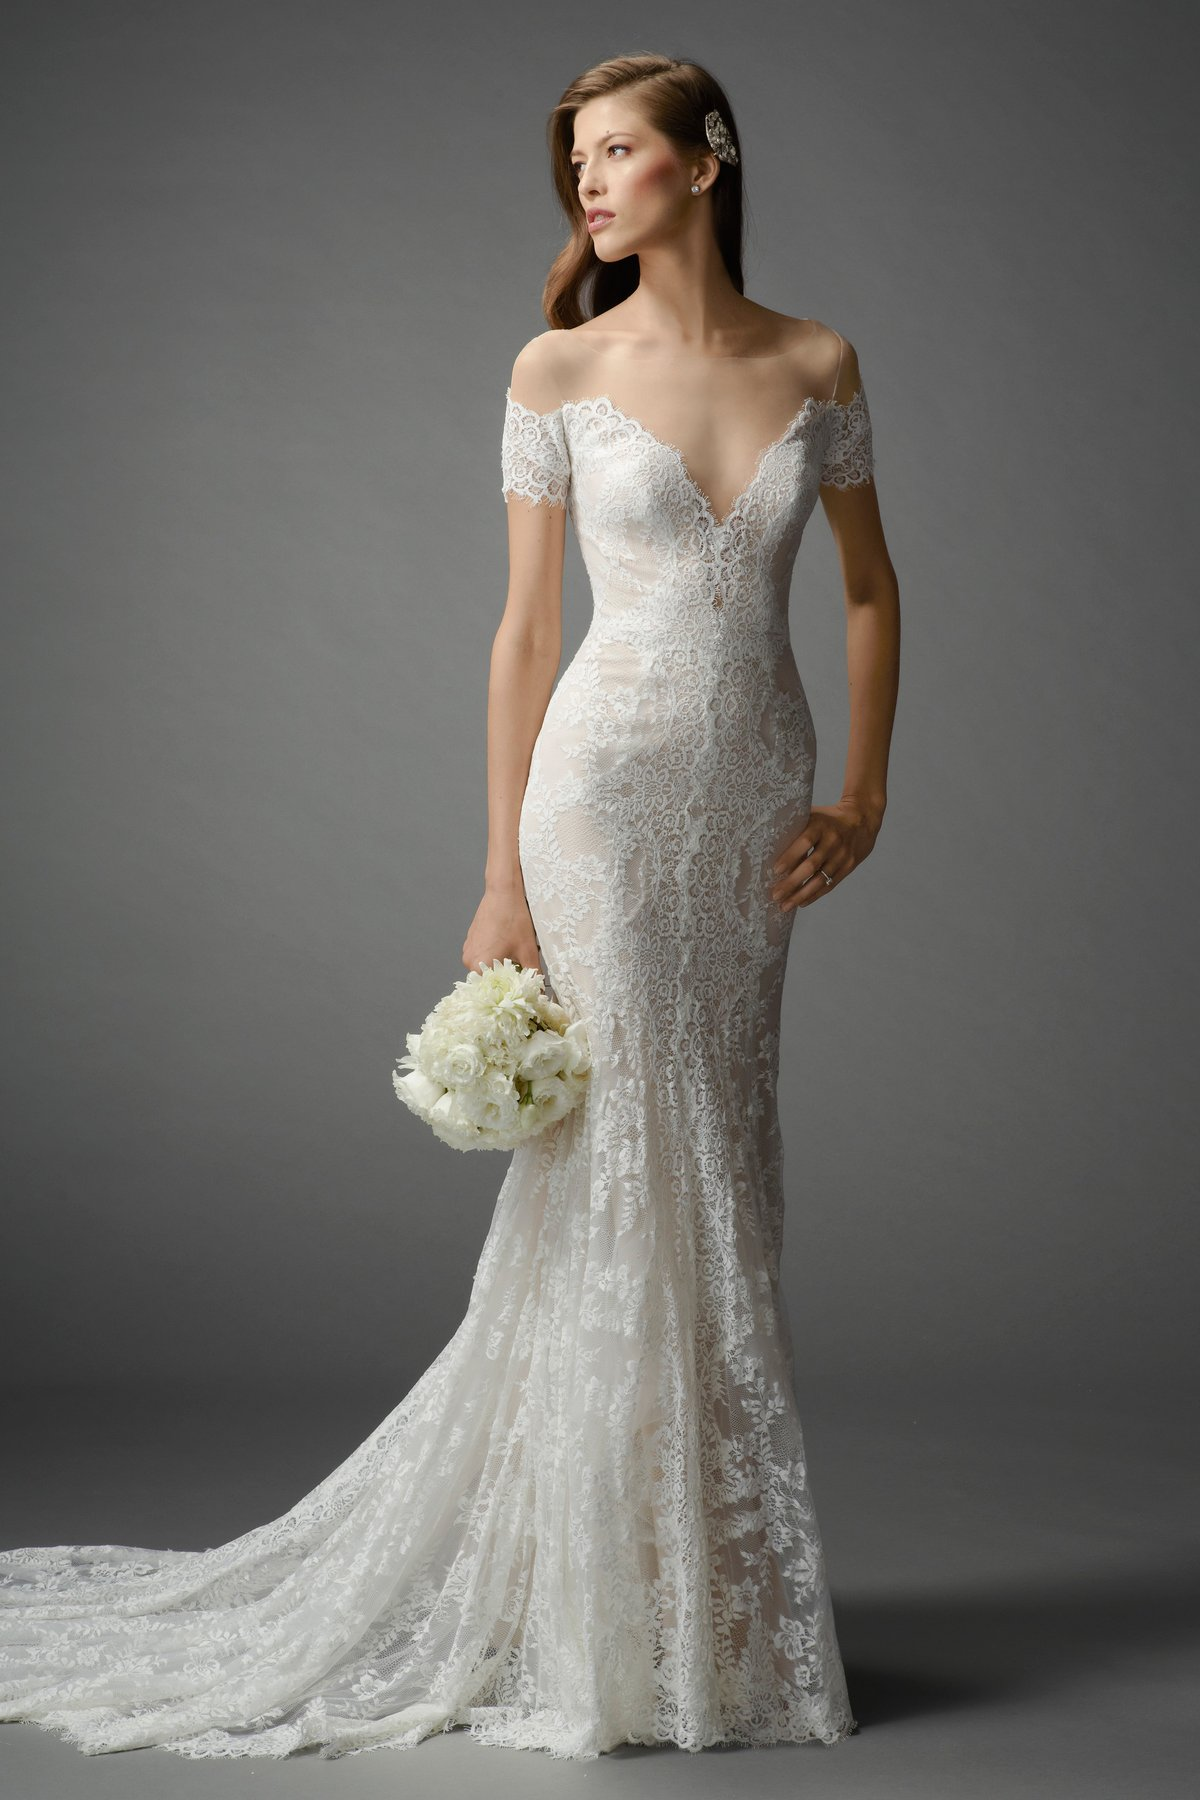 Fancy Las Vegas Bridal Gowns Images - Top Wedding Gowns ...